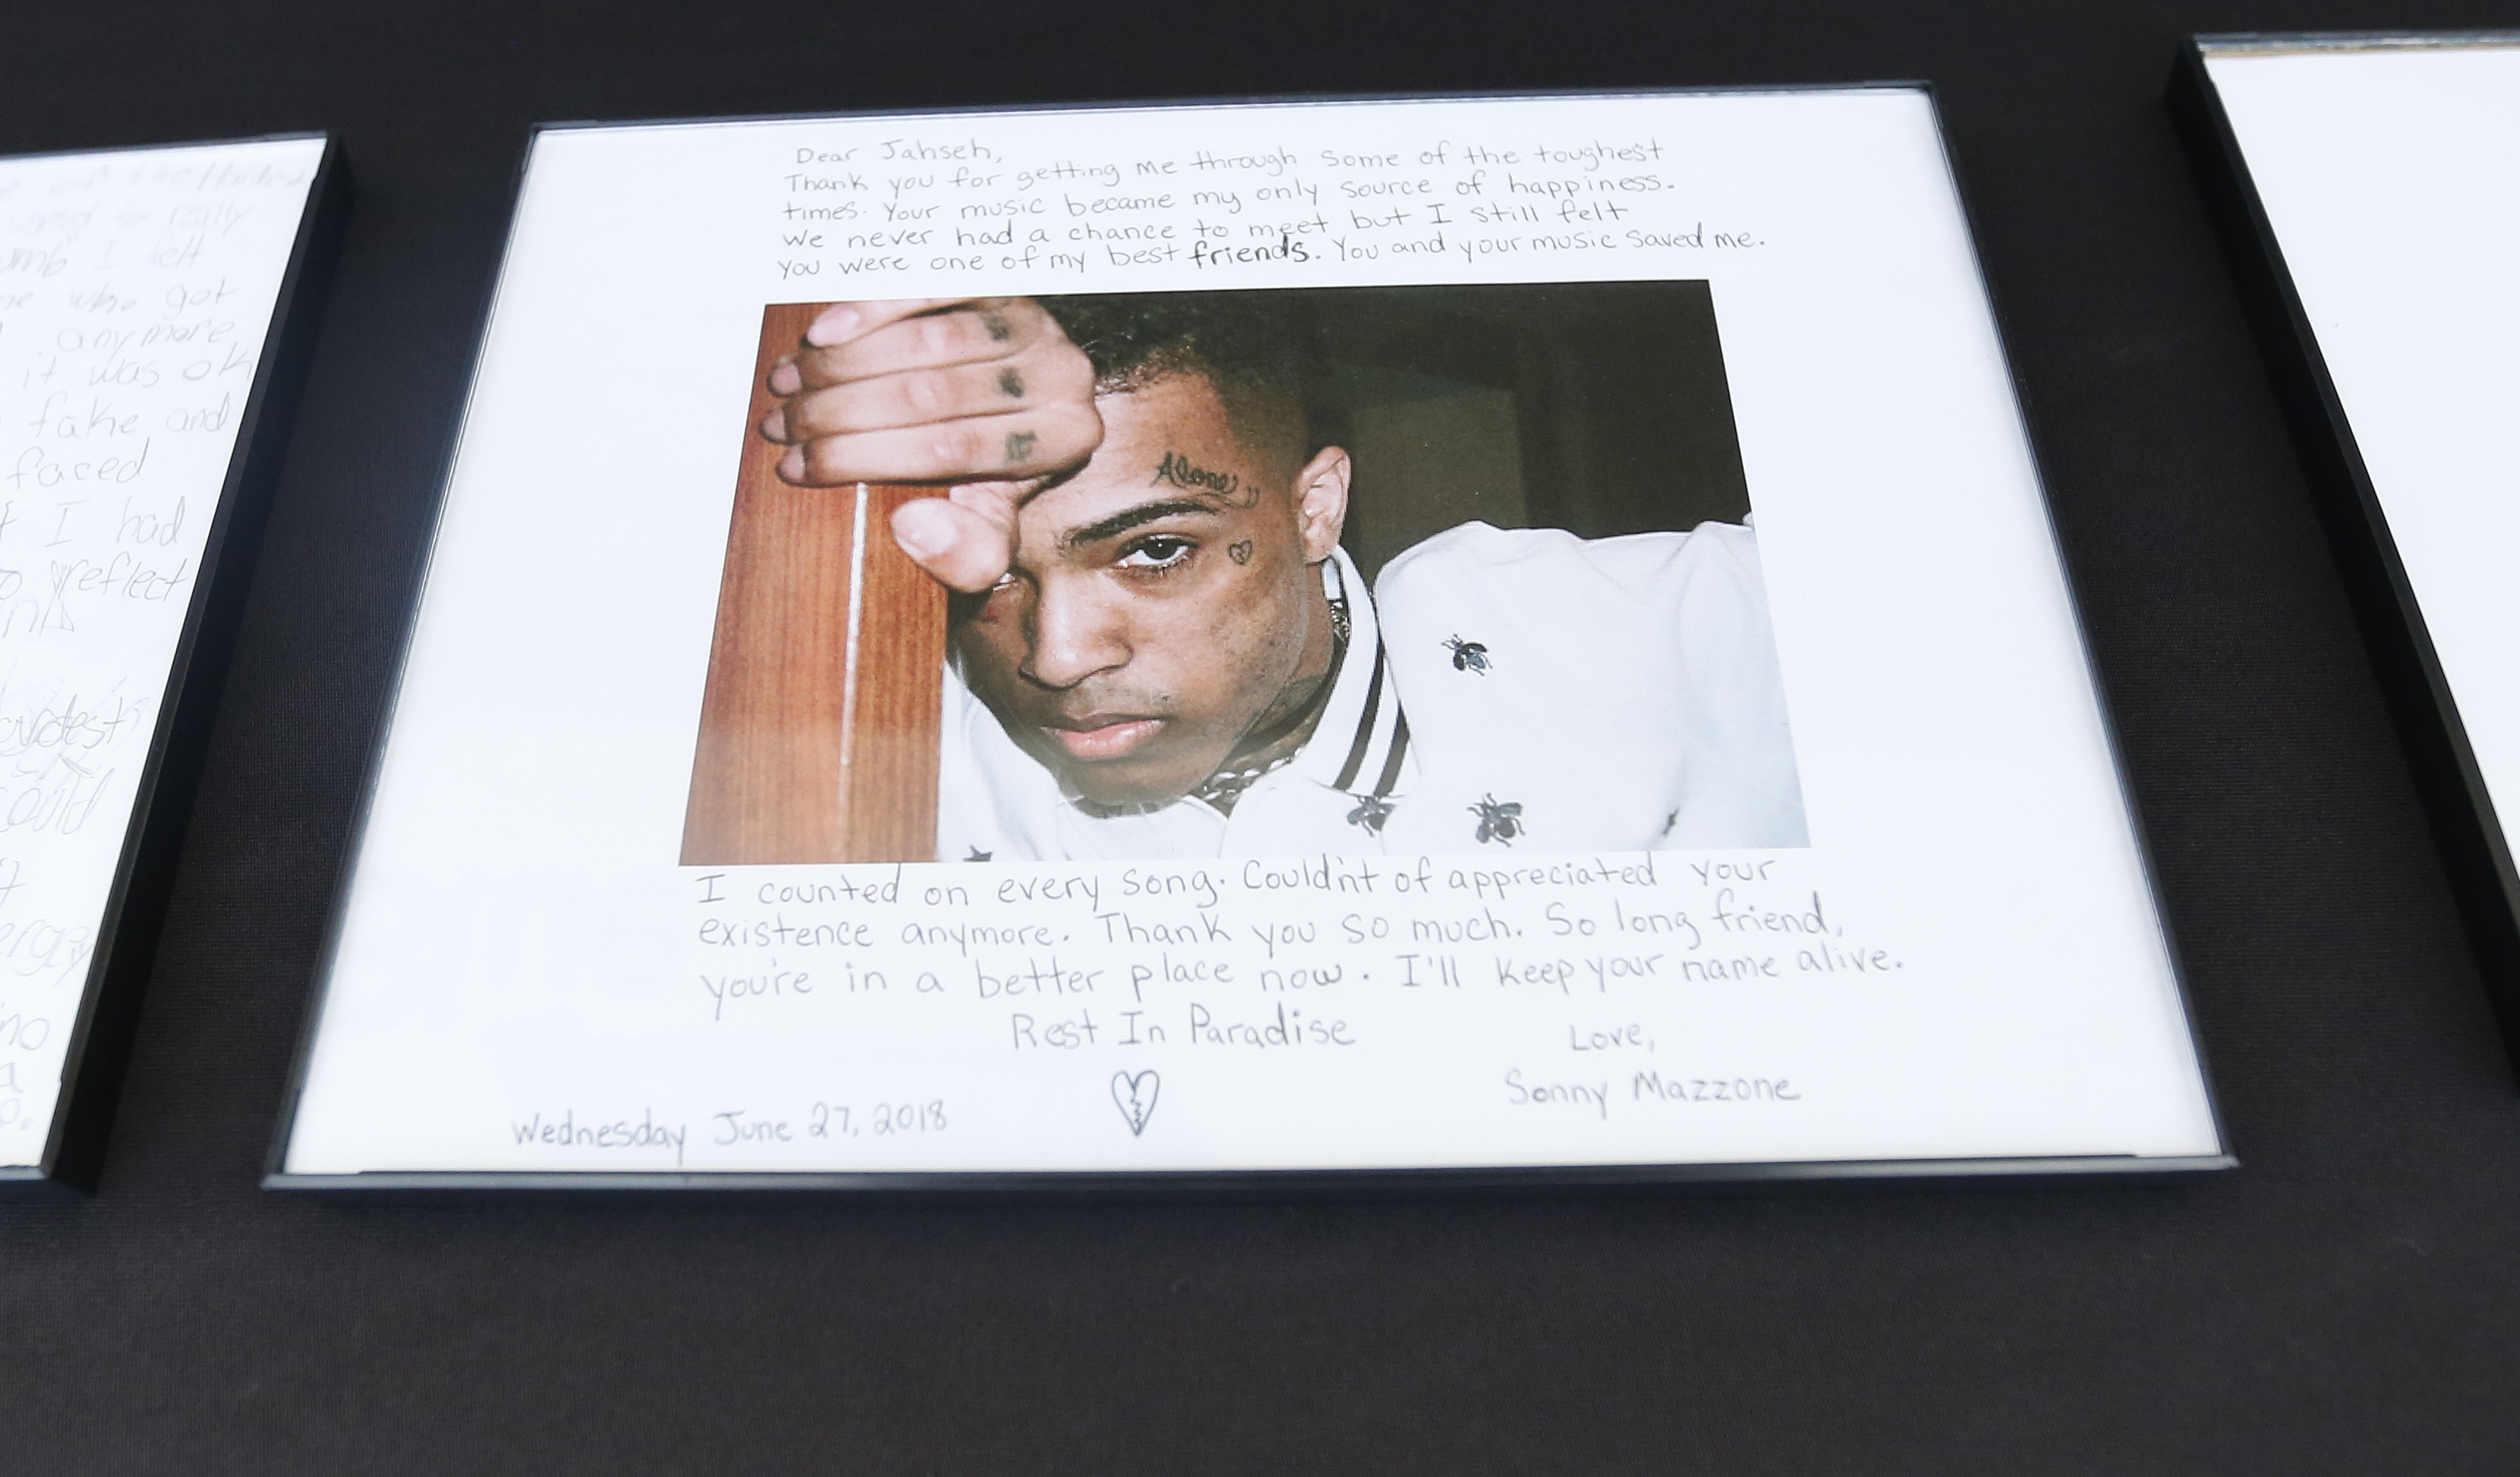 <div class='meta'><div class='origin-logo' data-origin='AP'></div><span class='caption-text' data-credit='AP'>A fan leaves a letter for slain rapper, XXXTentacion, during a memorial on Wednesday, June 27, 2018, in Sunrise, Fla. (AP Photo/Brynn Anderson)</span></div>